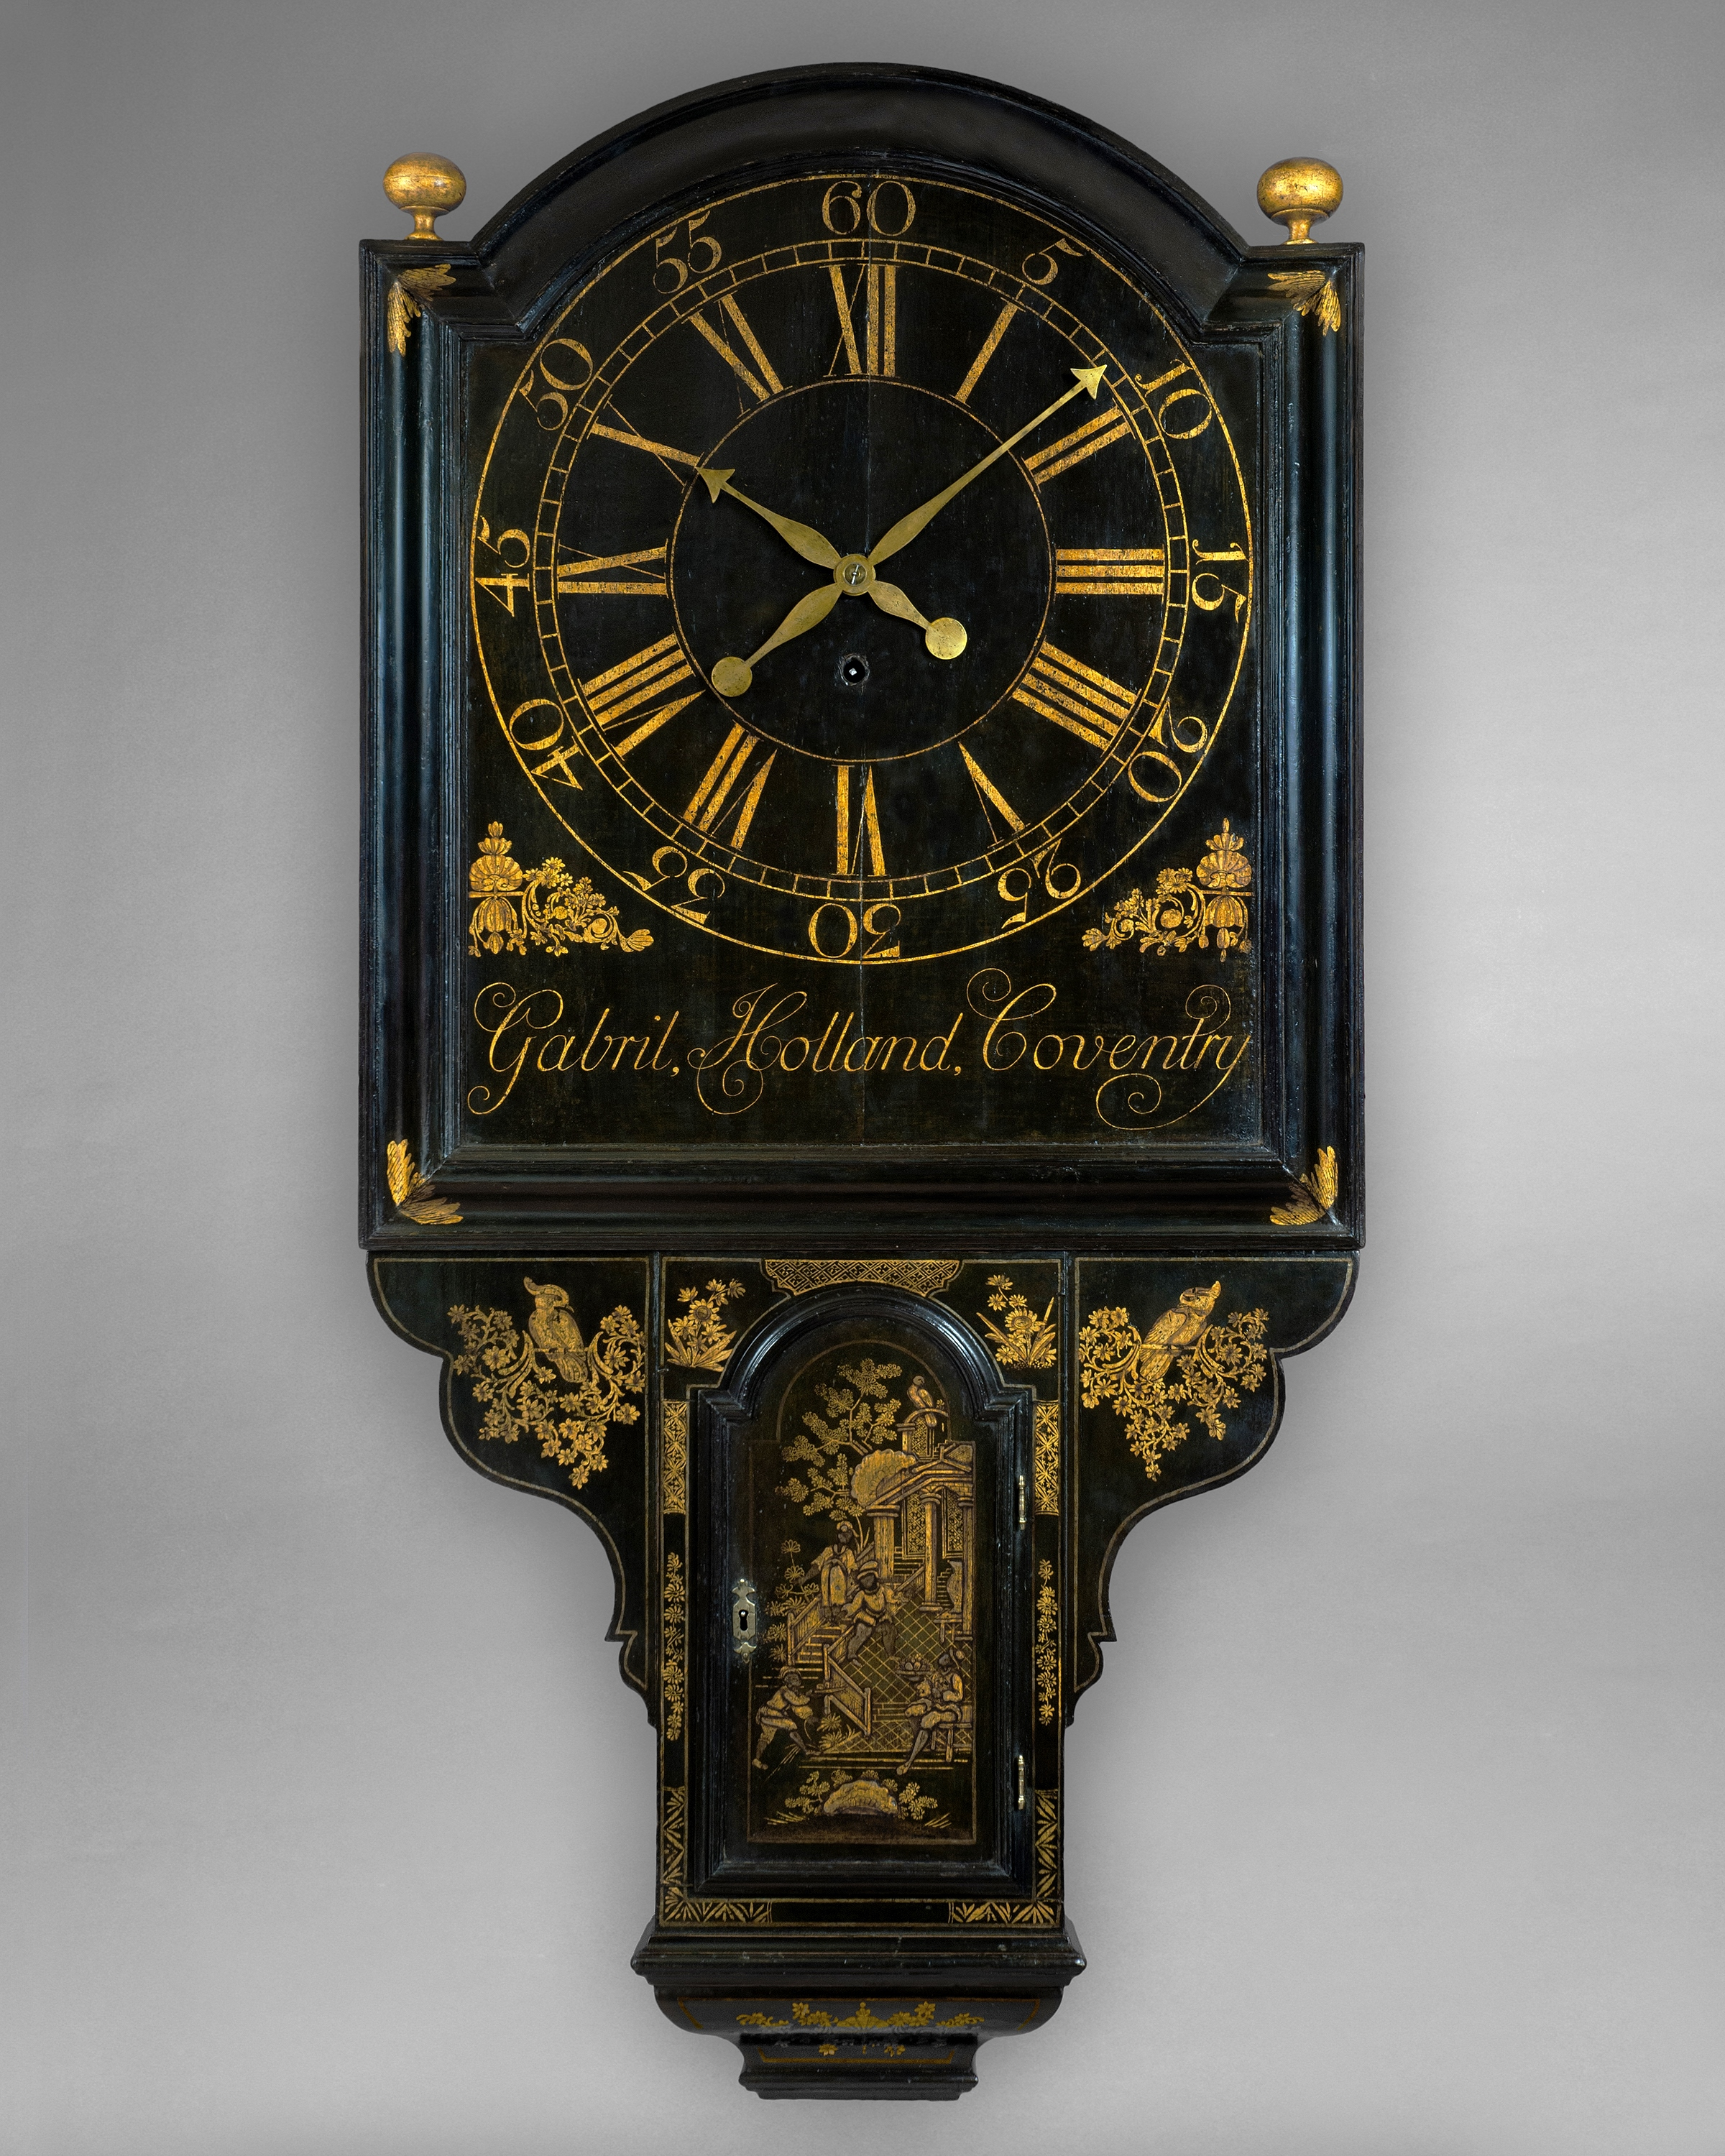 george II period shield dial lacquer tavern clock by Gabril Holland, Coventry. Circa 1730. Raffety Ltd